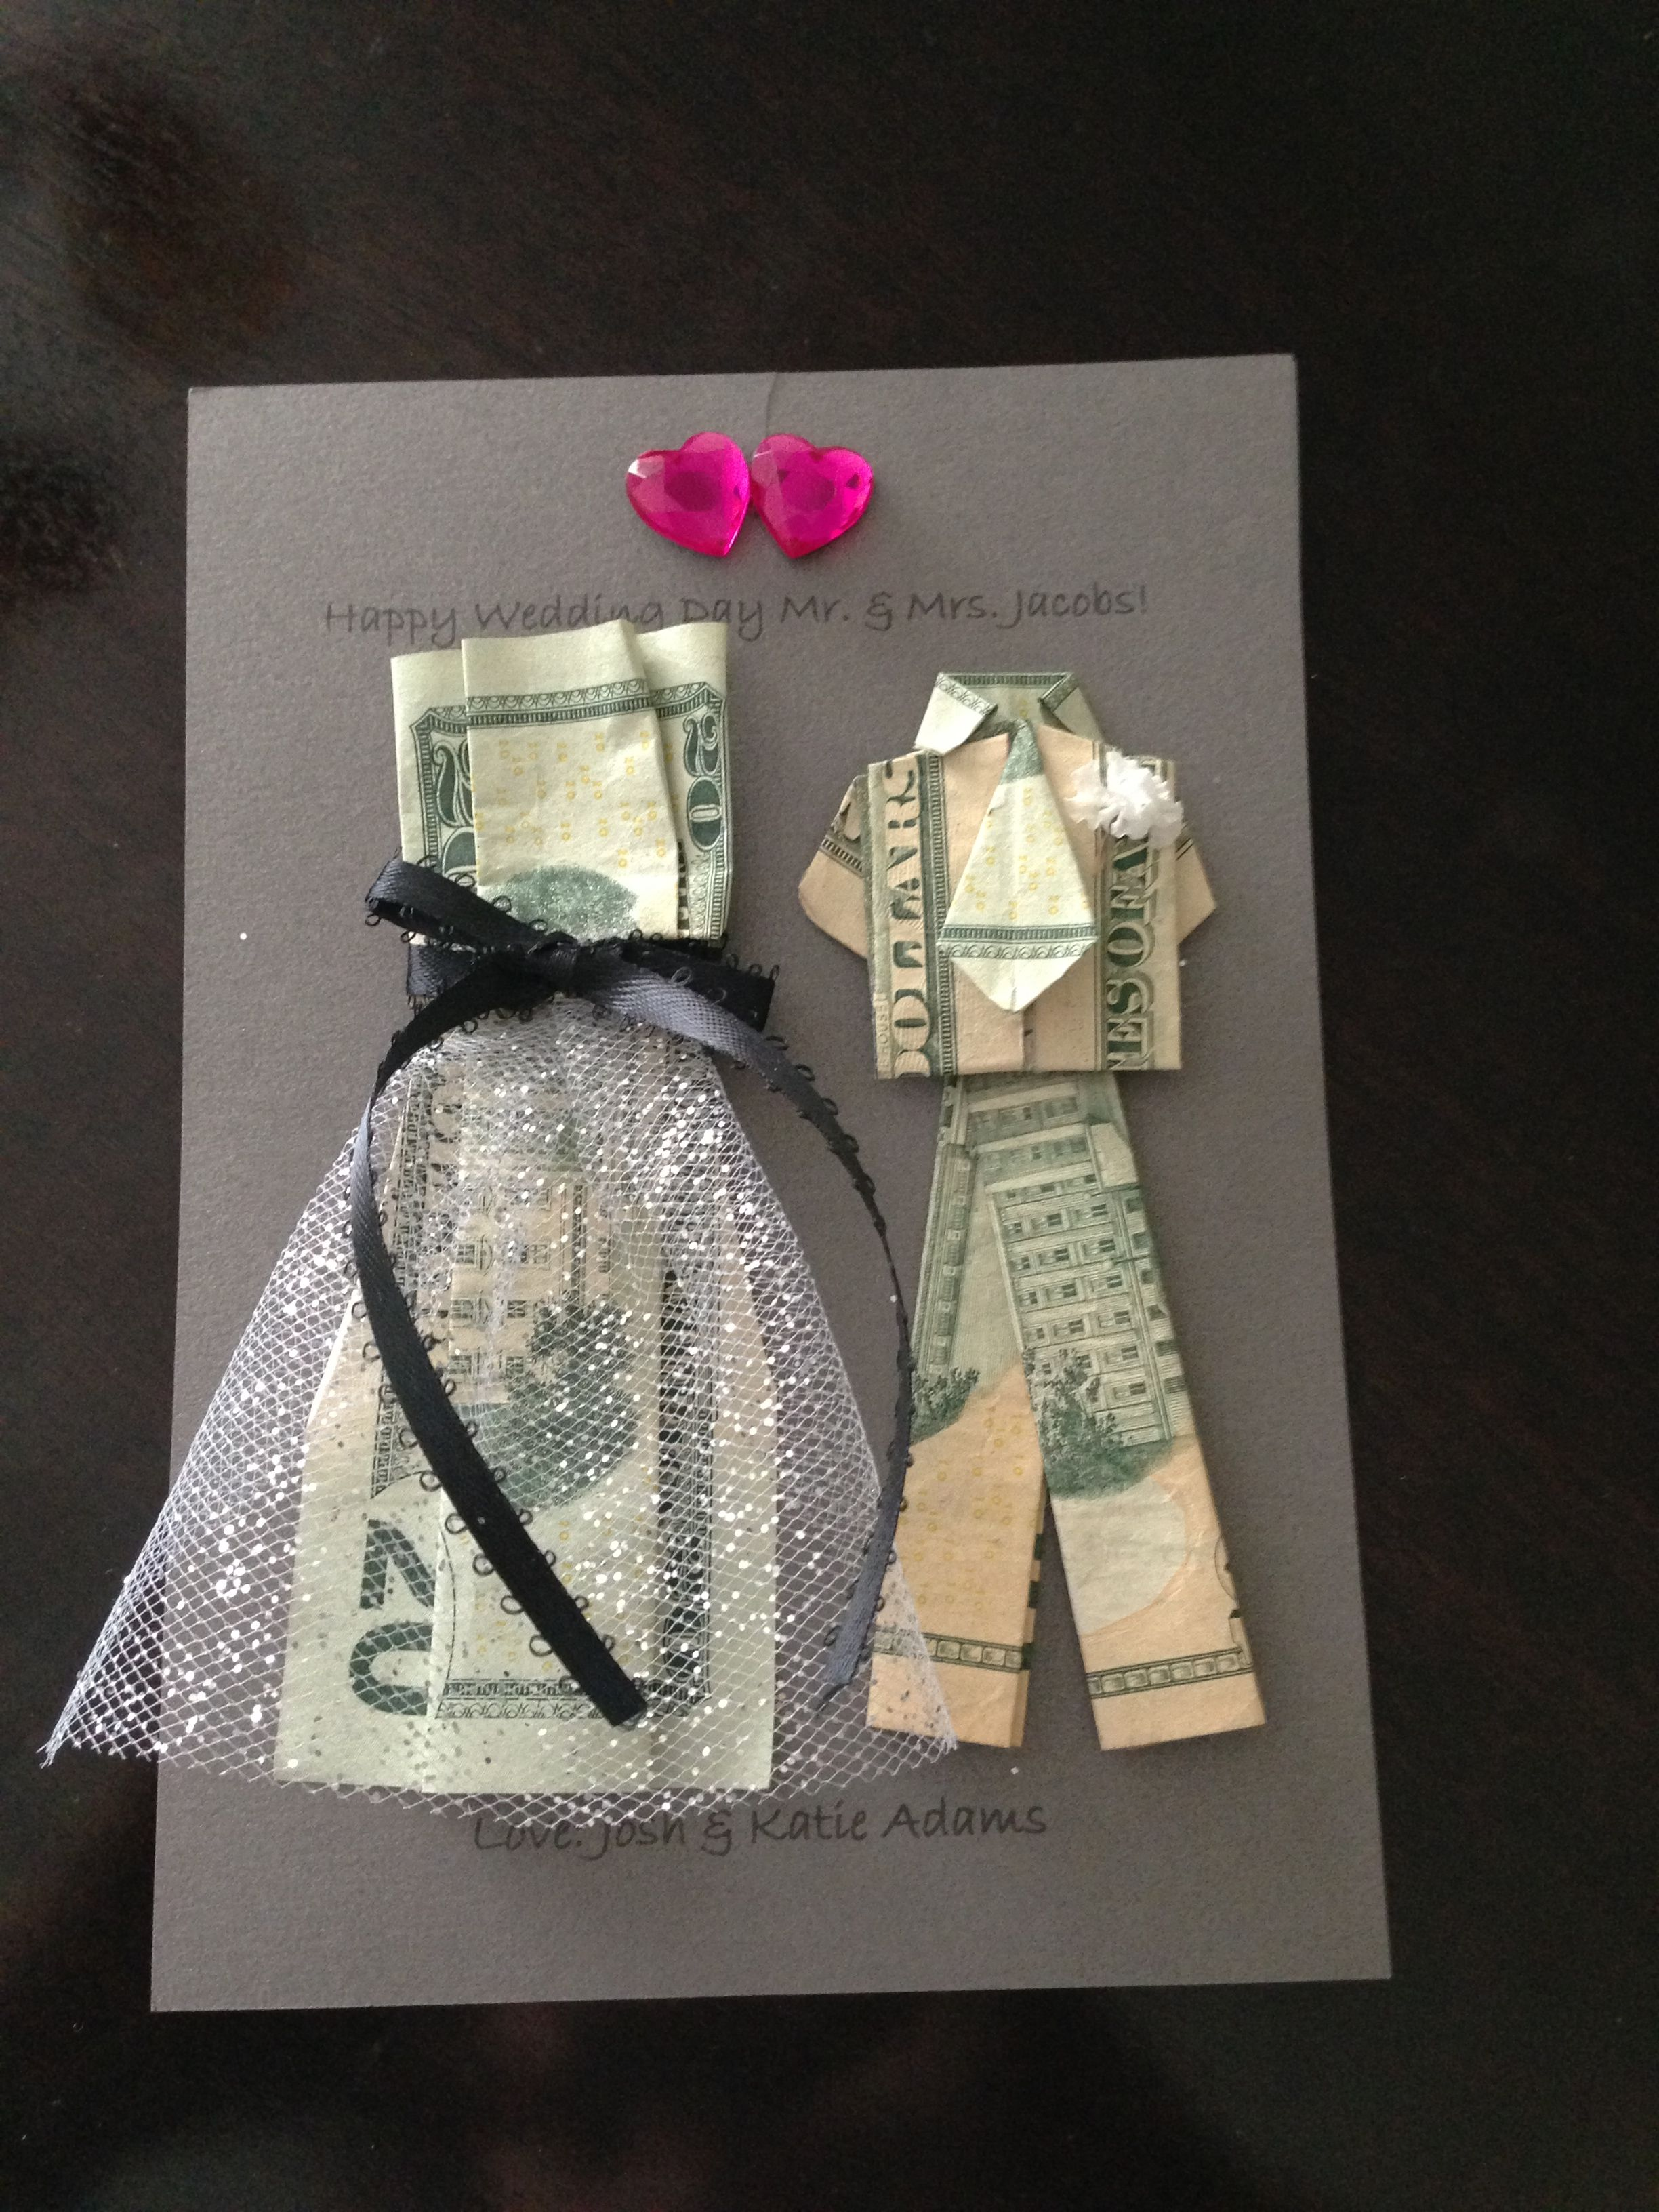 Wedding Gift Giving Money : Wedding Money Gifts on Pinterest Money Gift Wedding, Wedding Gift ...